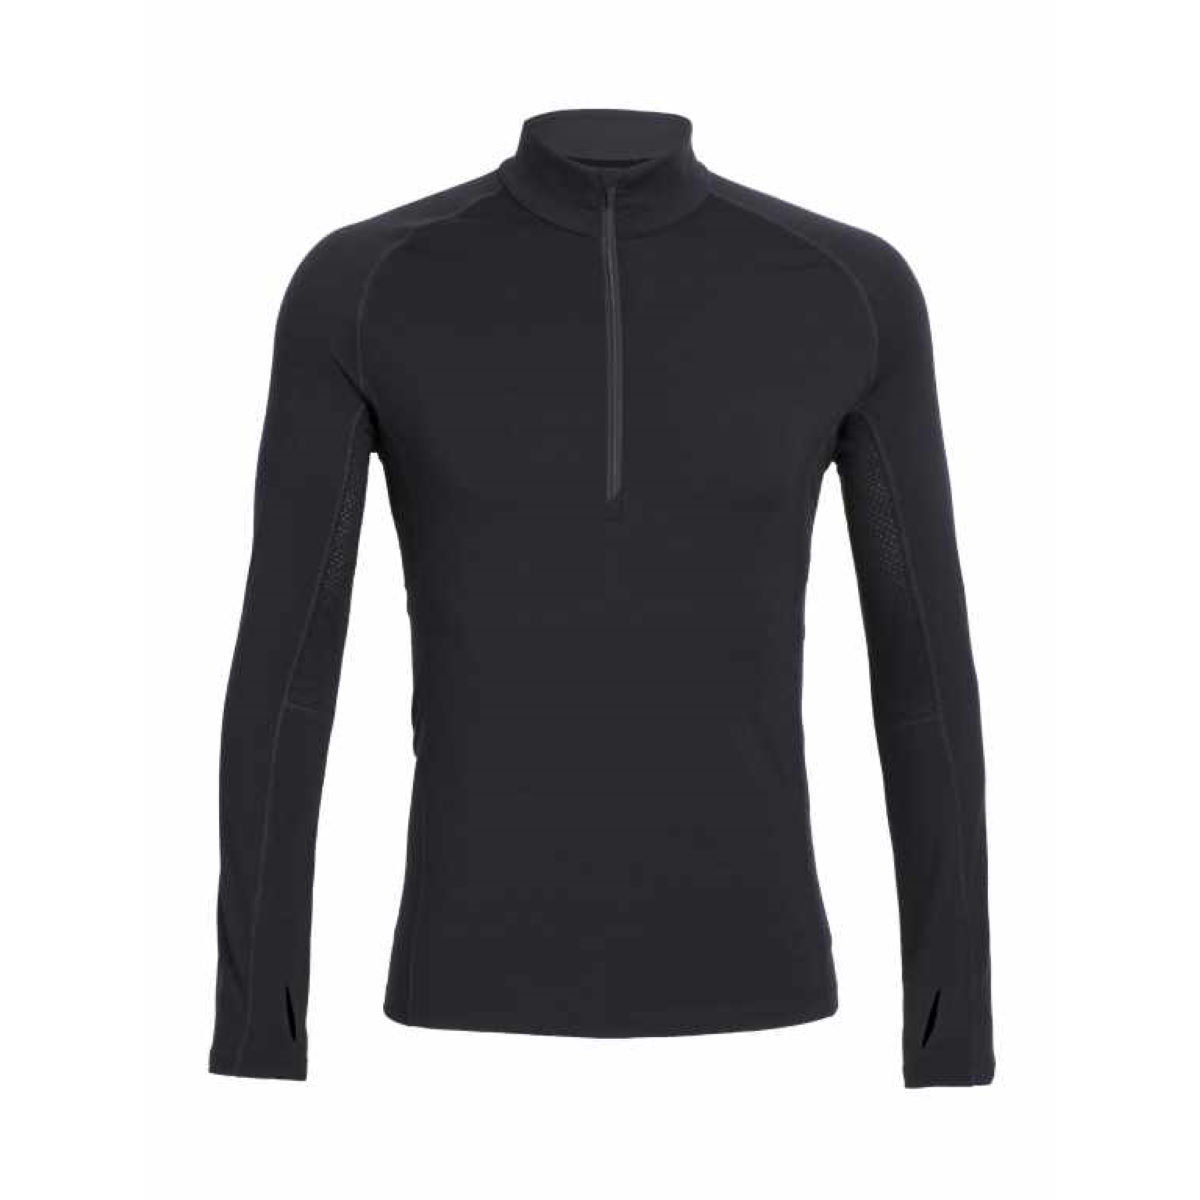 Icebreaker Everyday Long Sleeve Half Zip Top   Baselayer Tops